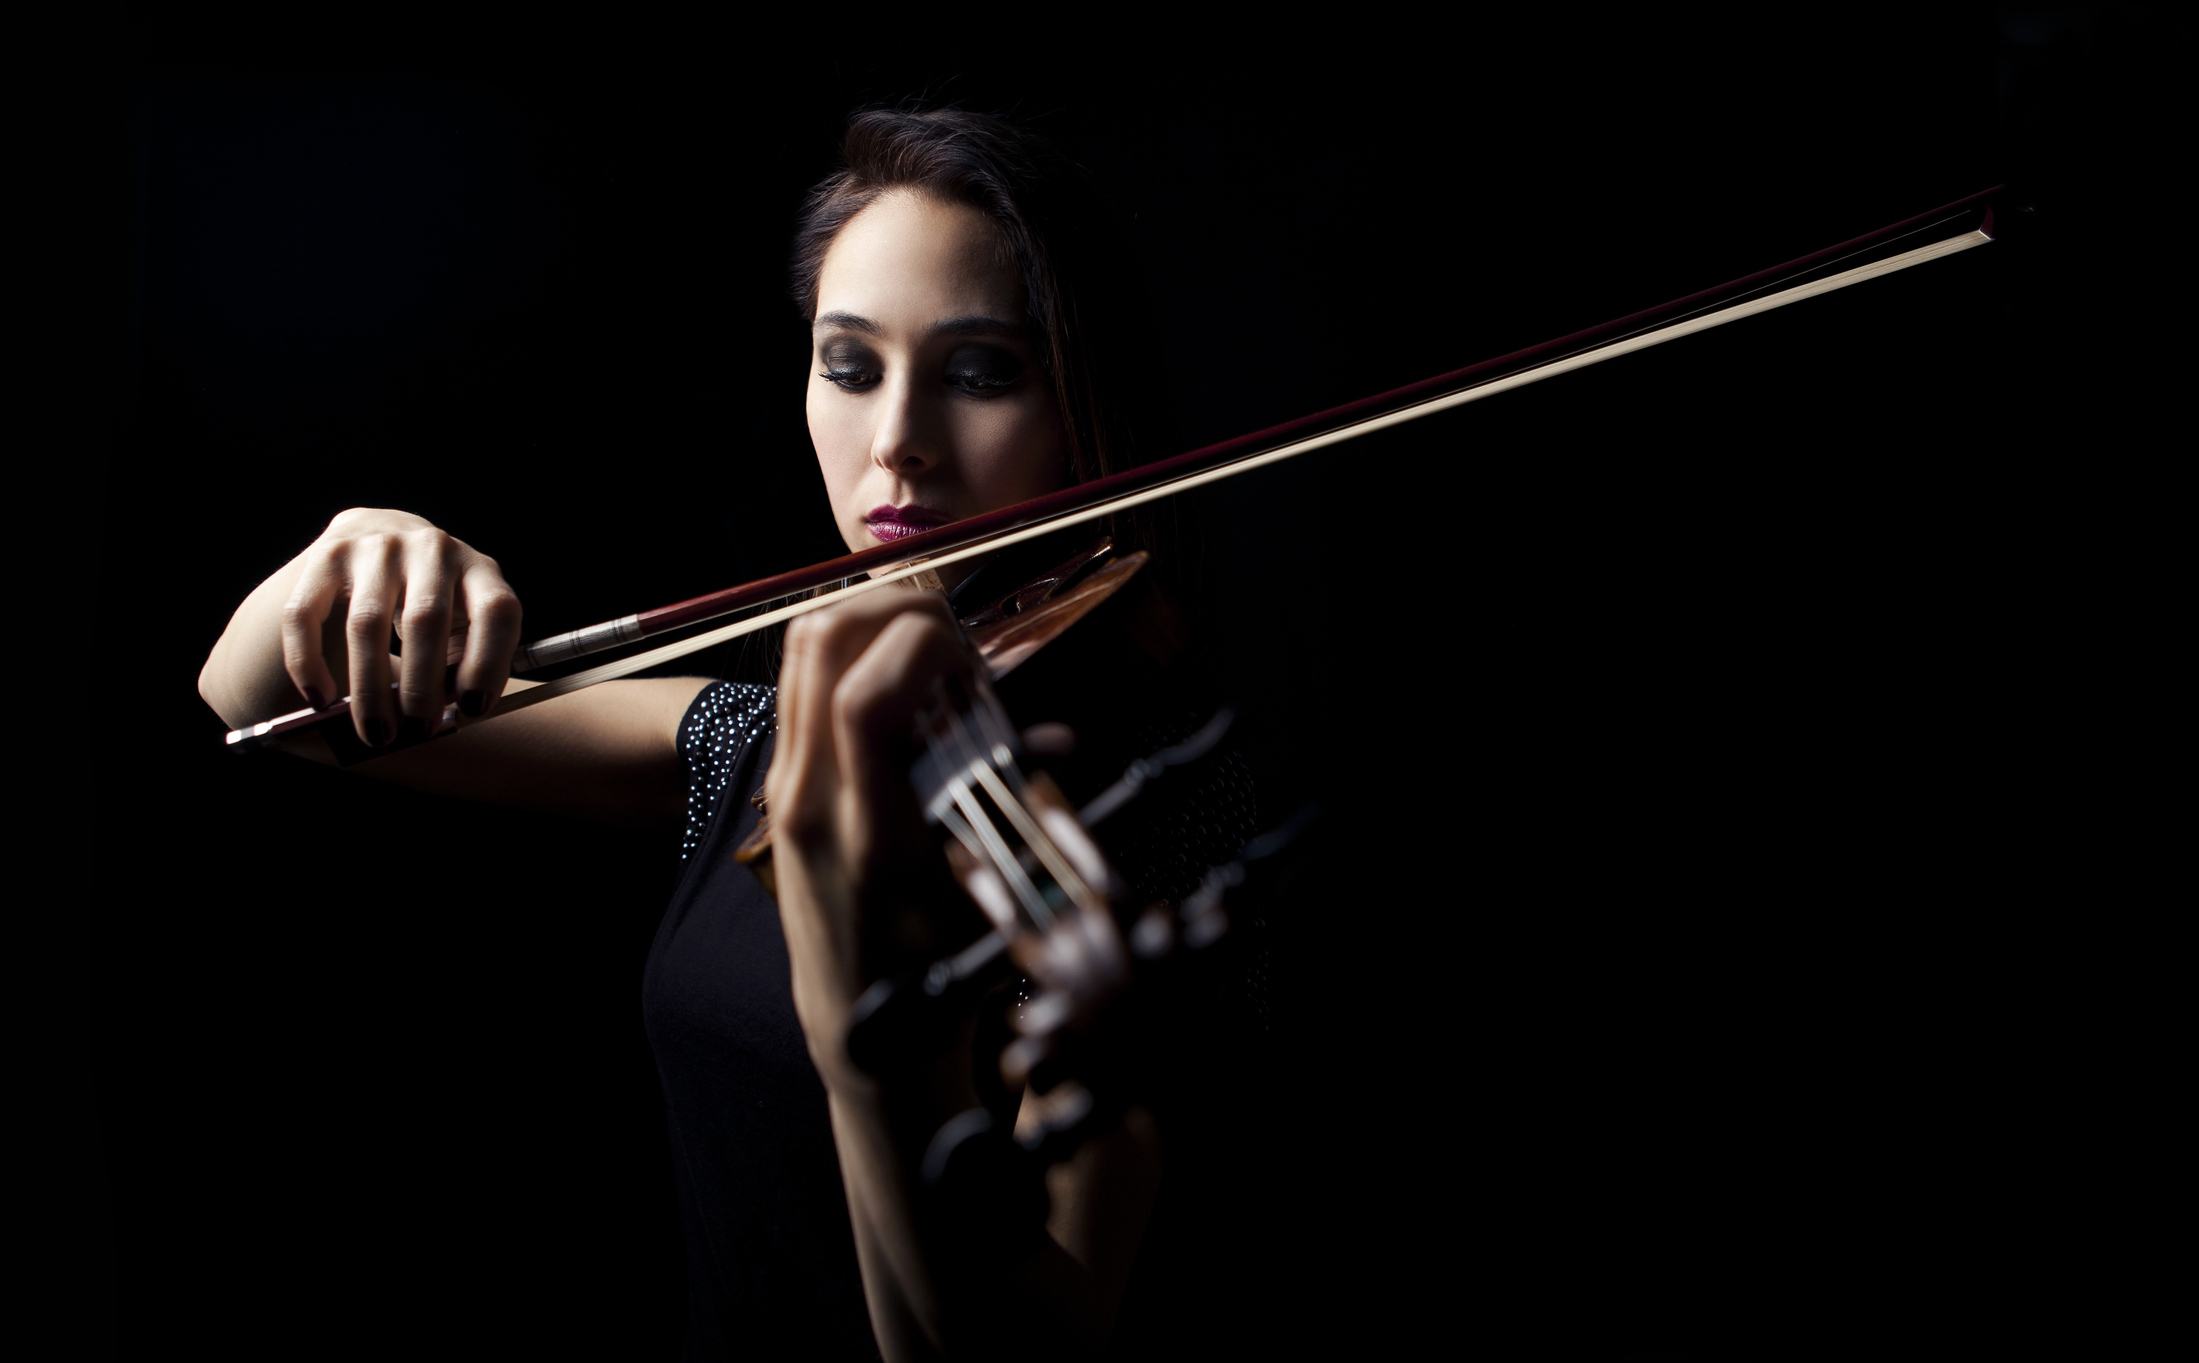 Imagine Having a Professional Violinist On-call 24/7 - Easy to use and navigate, the Peckins Studio Online gives you access to over 200 violin lessons (over 22 hours of video!)Each lesson breaks down the technique, demonstrates everything in HD, and gives clear practice instructions.Your online violin guide, available 24/7